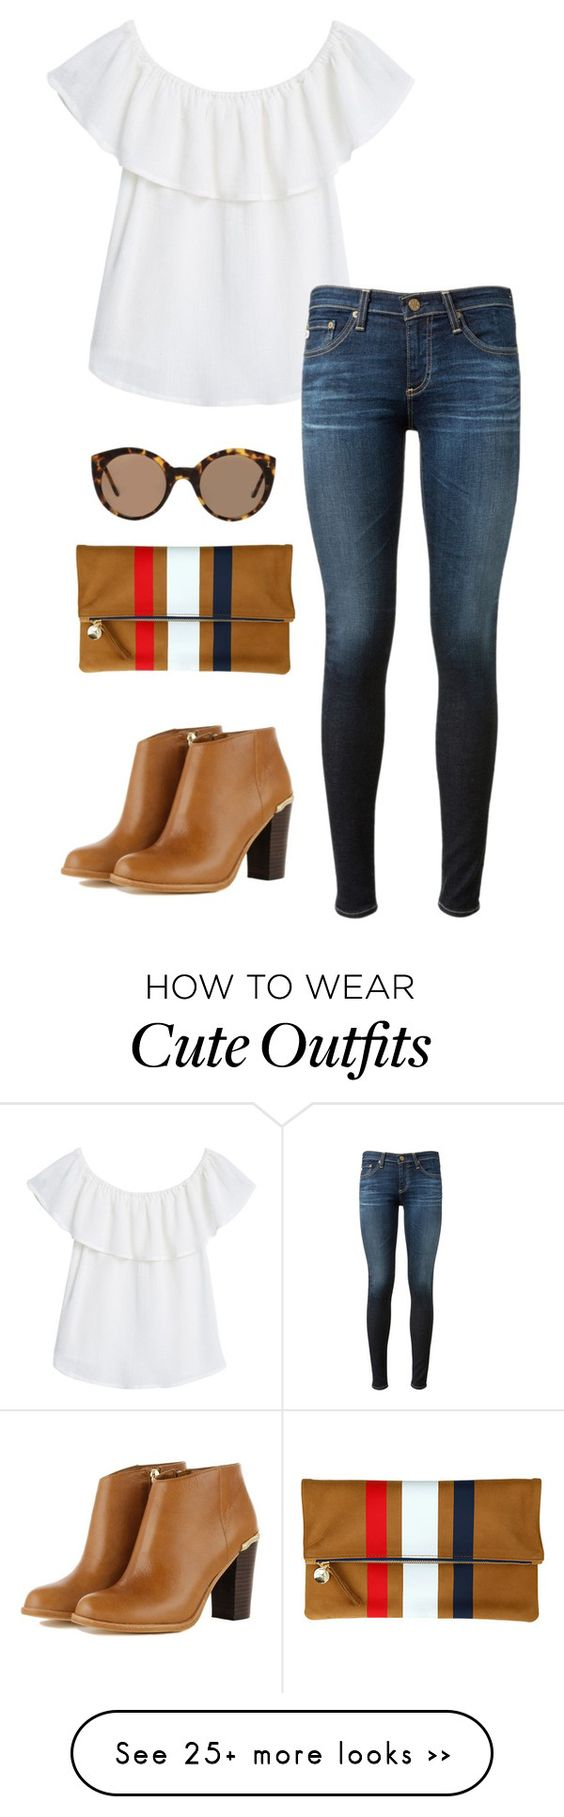 """cute fall transitioning outfit"" by kcunningham1 on Polyvore featuring MANGO, AG Adriano Goldschmied, Clare V. and Illesteva"